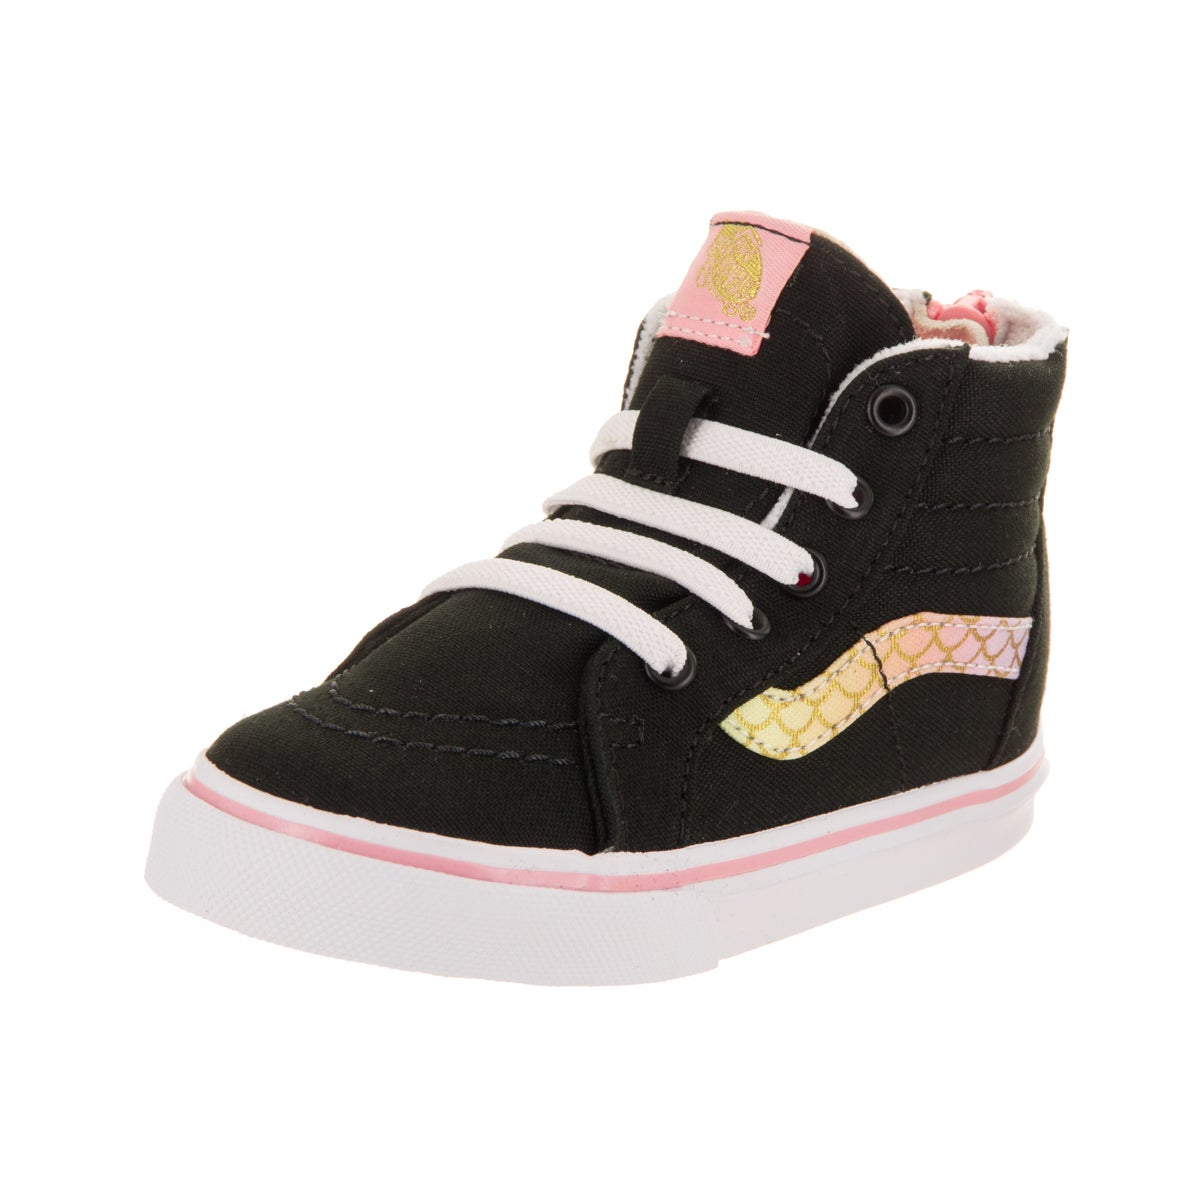 d36fd1e0e3c6 Shop Vans Toddlers Sk8-Hi Zip (Mermaid) Skate Shoe - Free Shipping On  Orders Over  45 - Overstock - 16431950